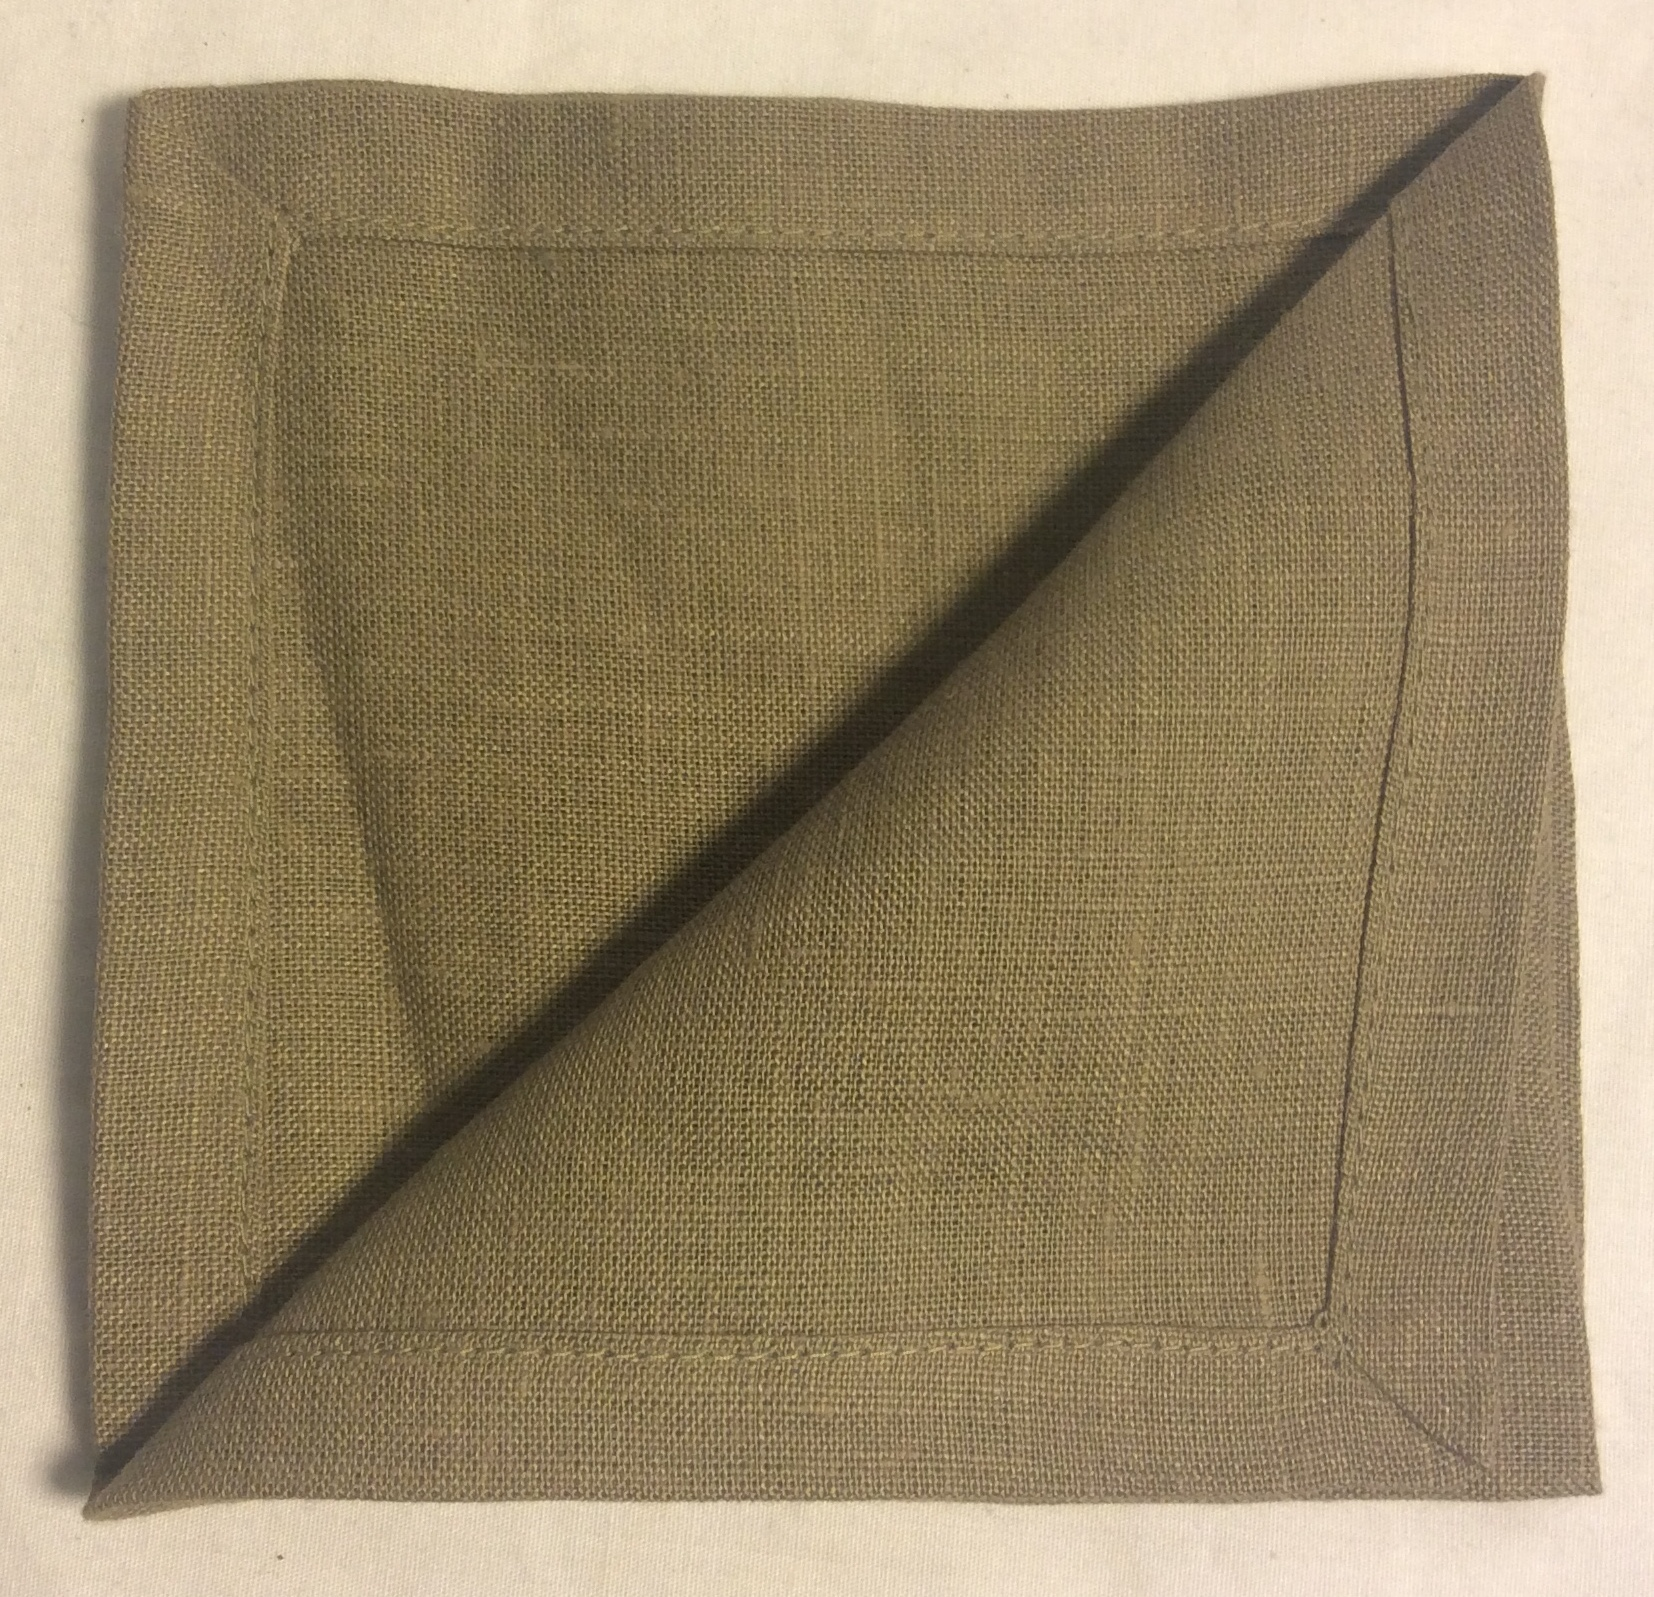 "Light Brown cloth napkins 10""x10"" - x6"